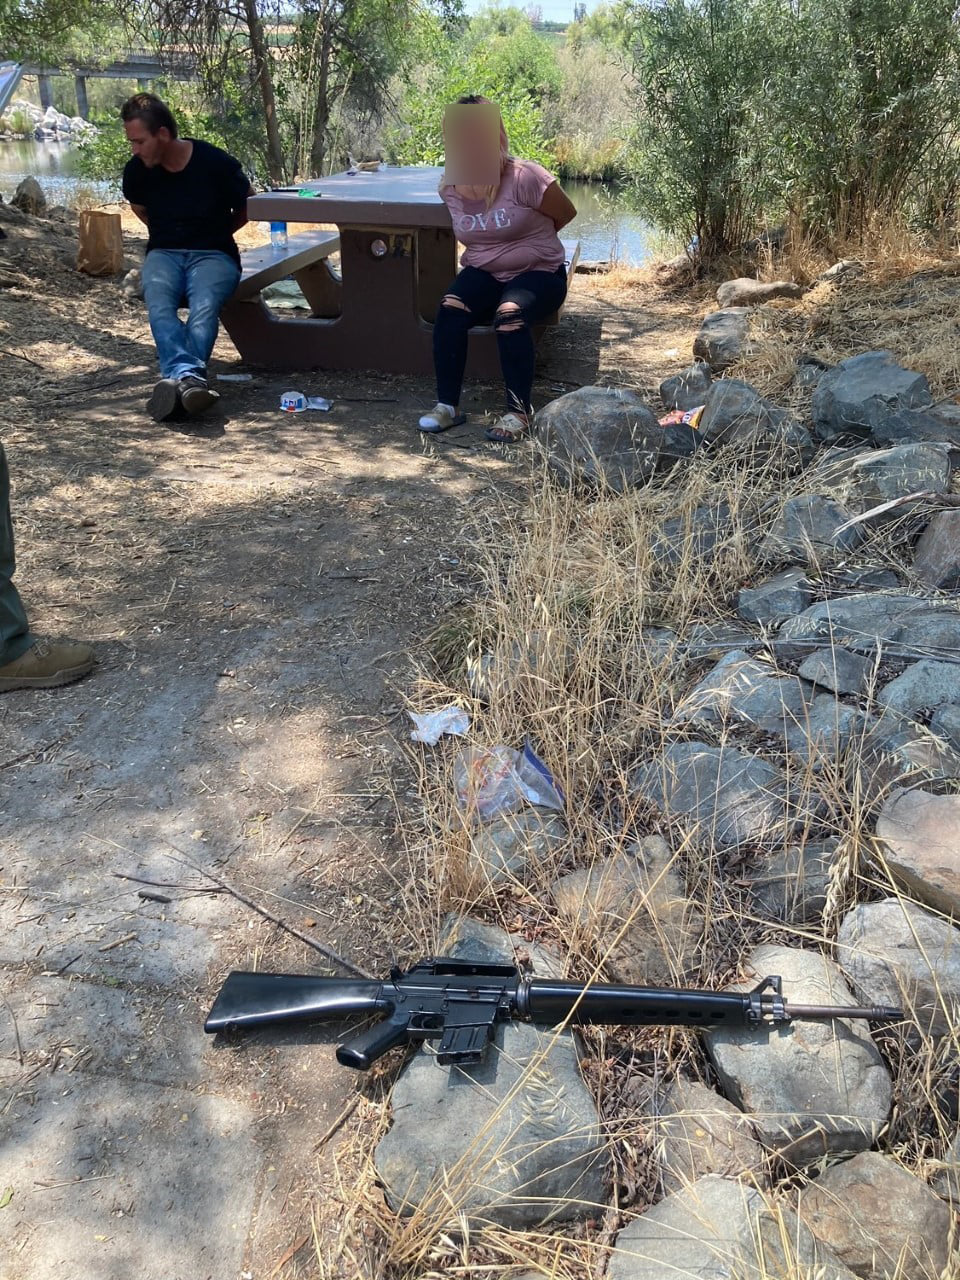 State Parks Rangers Assist Fresno County Deputies with Weapons Call